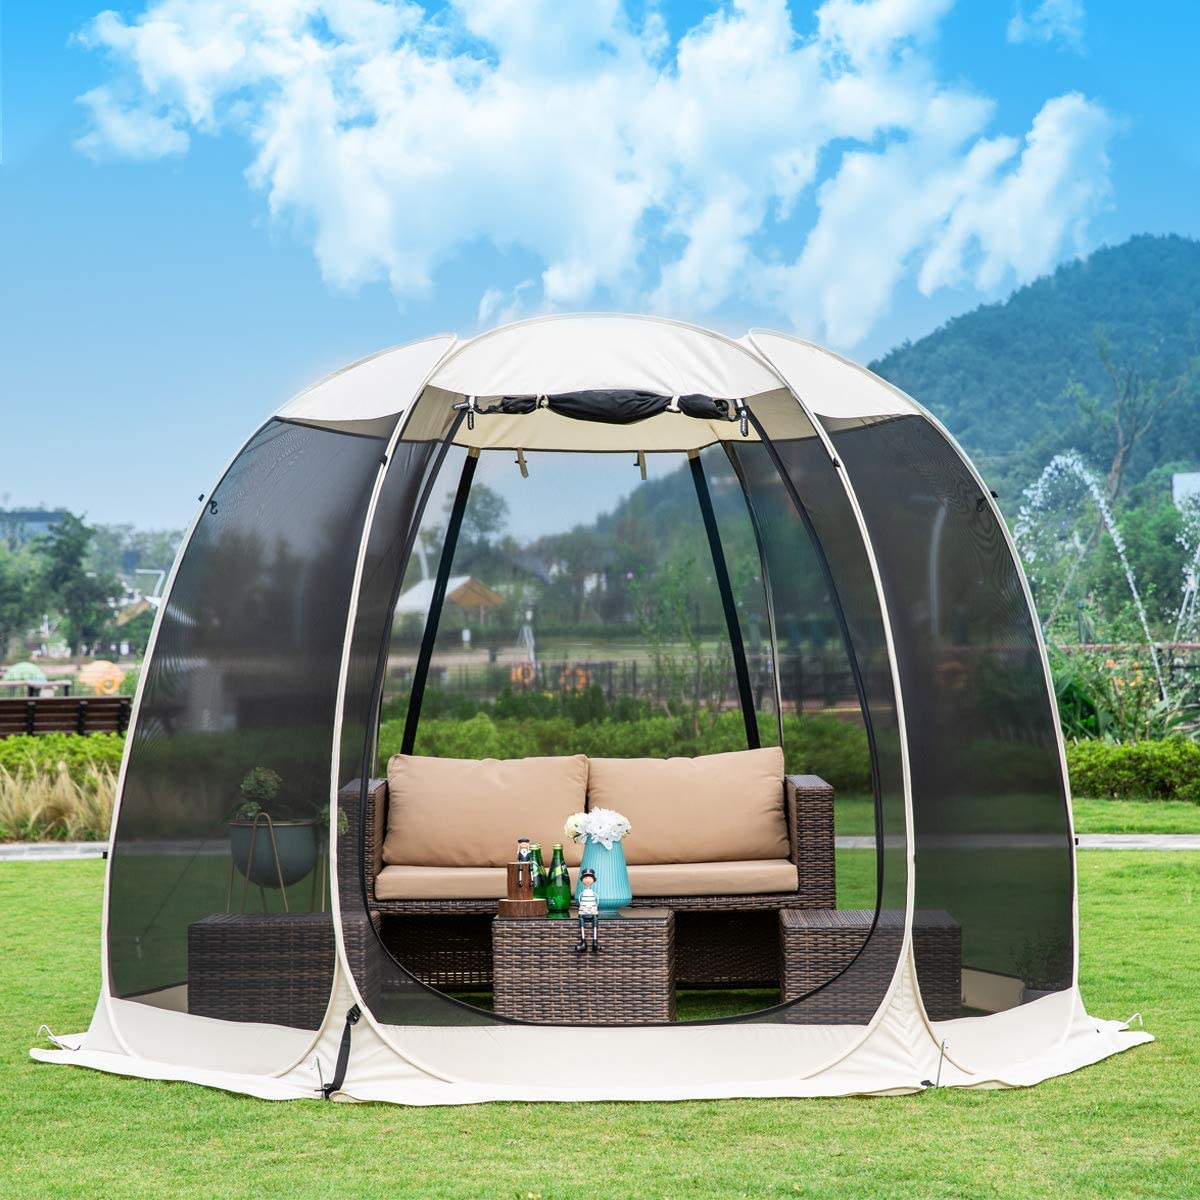 Leedor Gazebos for Patios Screen House Room 6-8 Person Canopy Mosquito Net Camping Tent Dining Pop Up Sun Shade Shelter Mesh Walls Not Waterproof Beige,10 x10